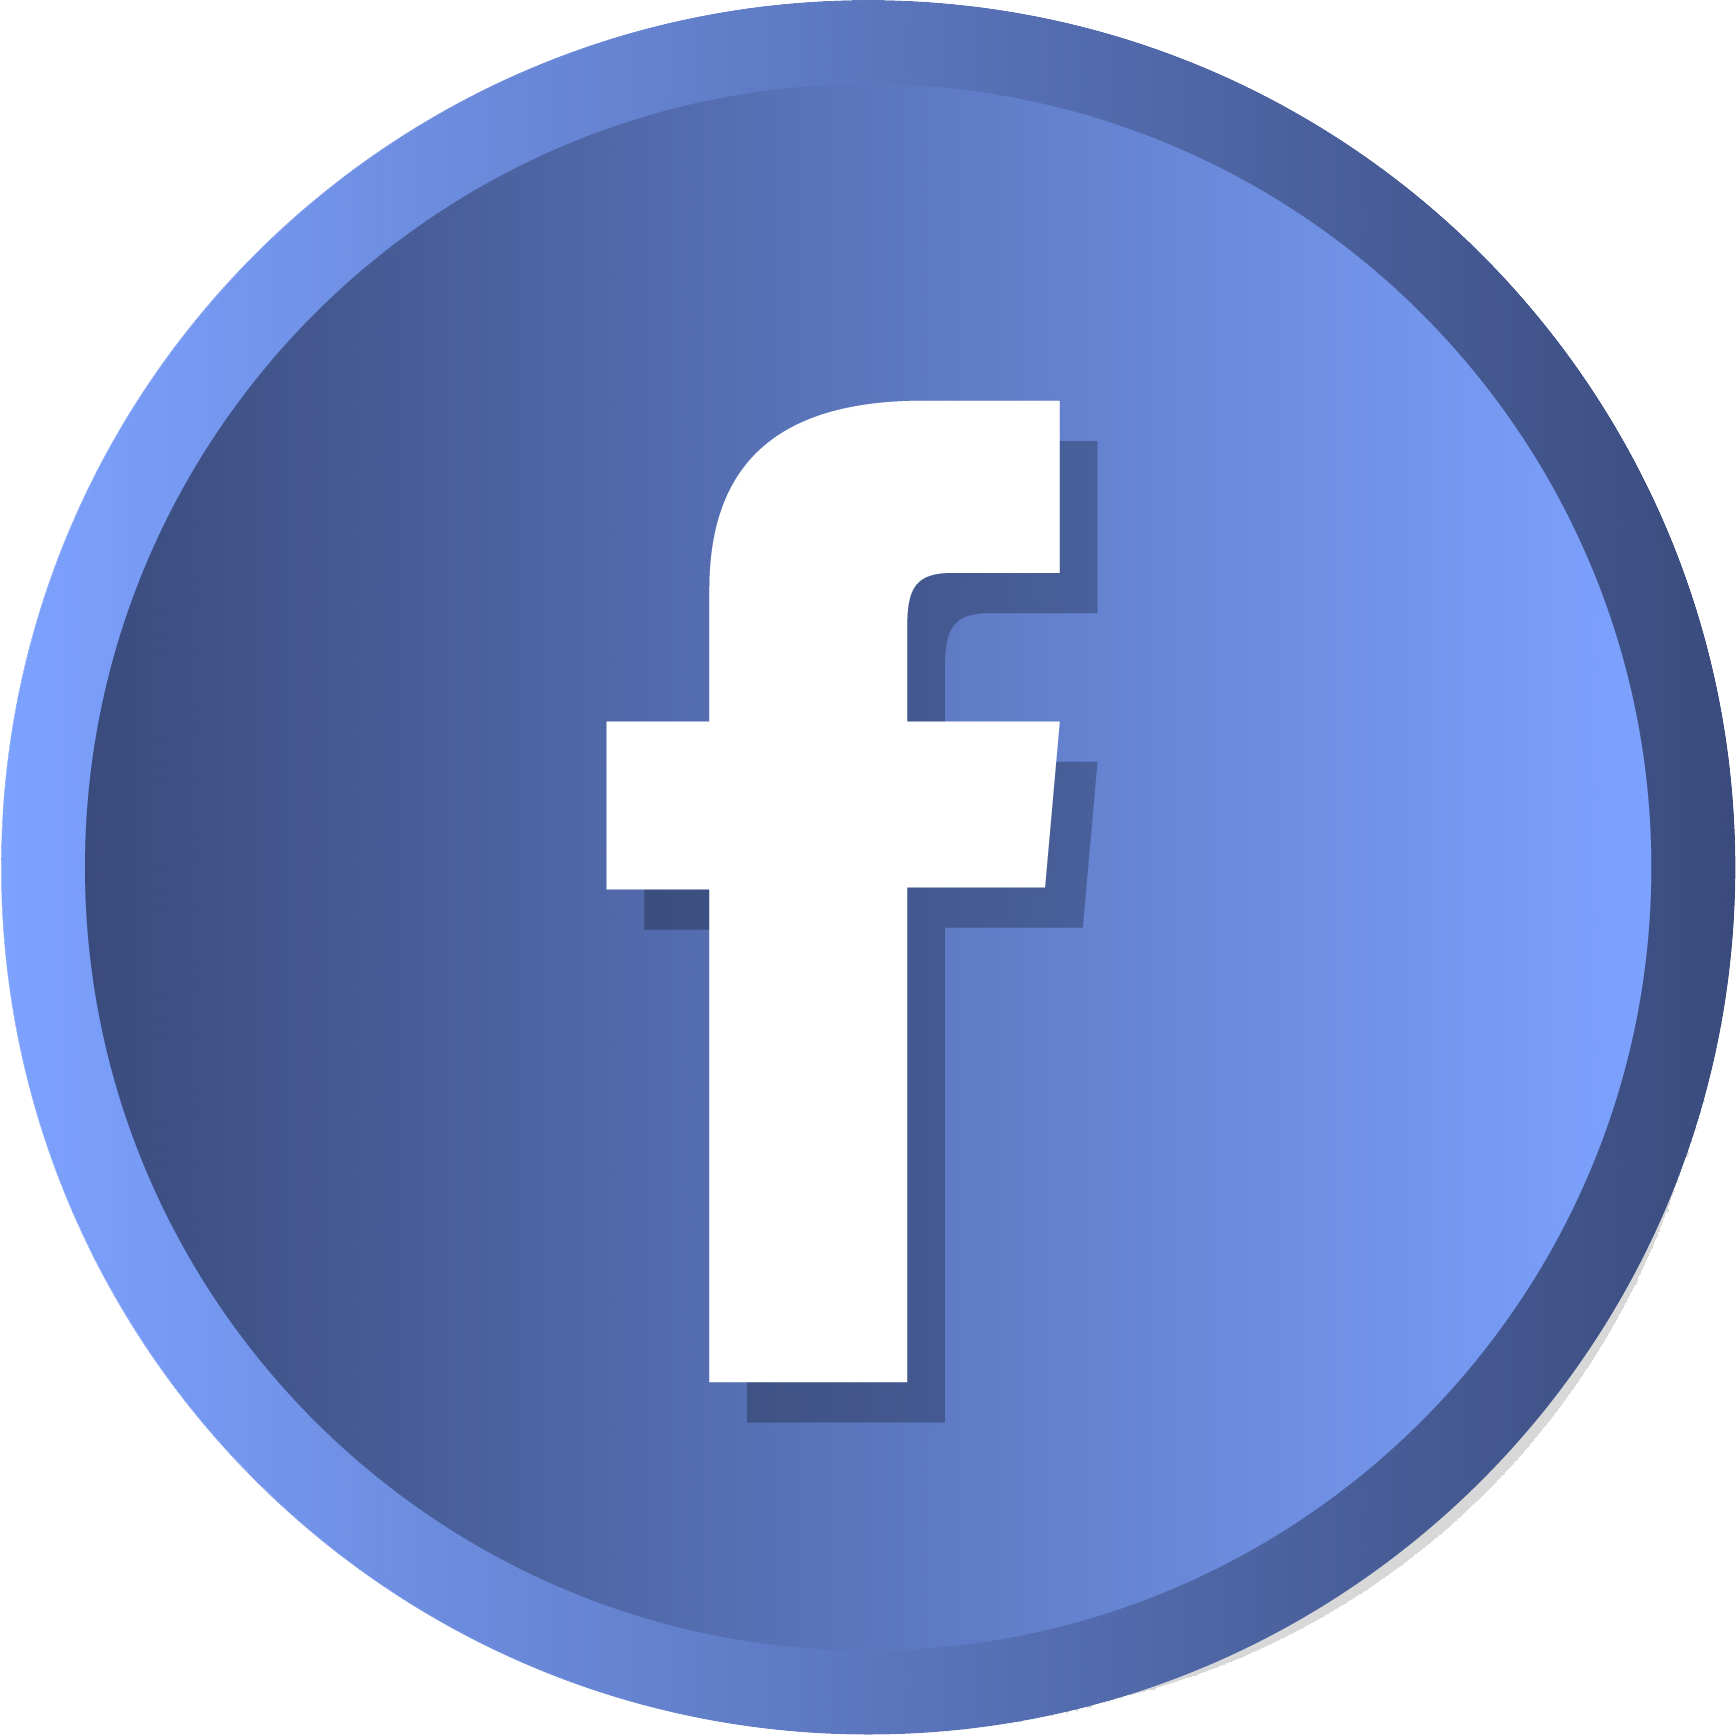 Facebook Logo by Lia Aramburu